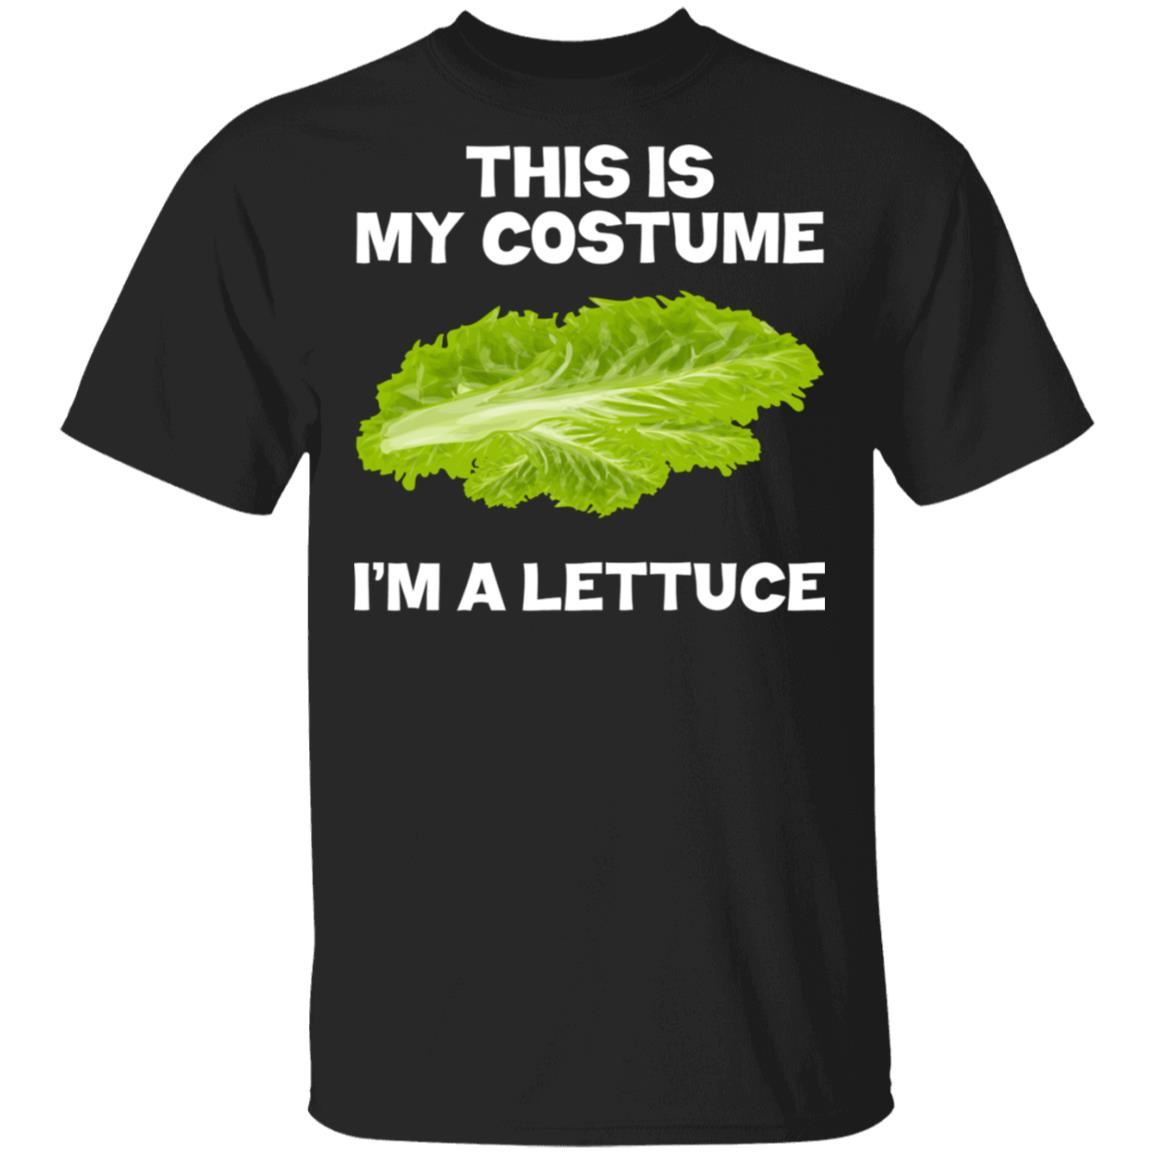 I'm A Lettuce This Is My Costume Unisex Short Sleeve